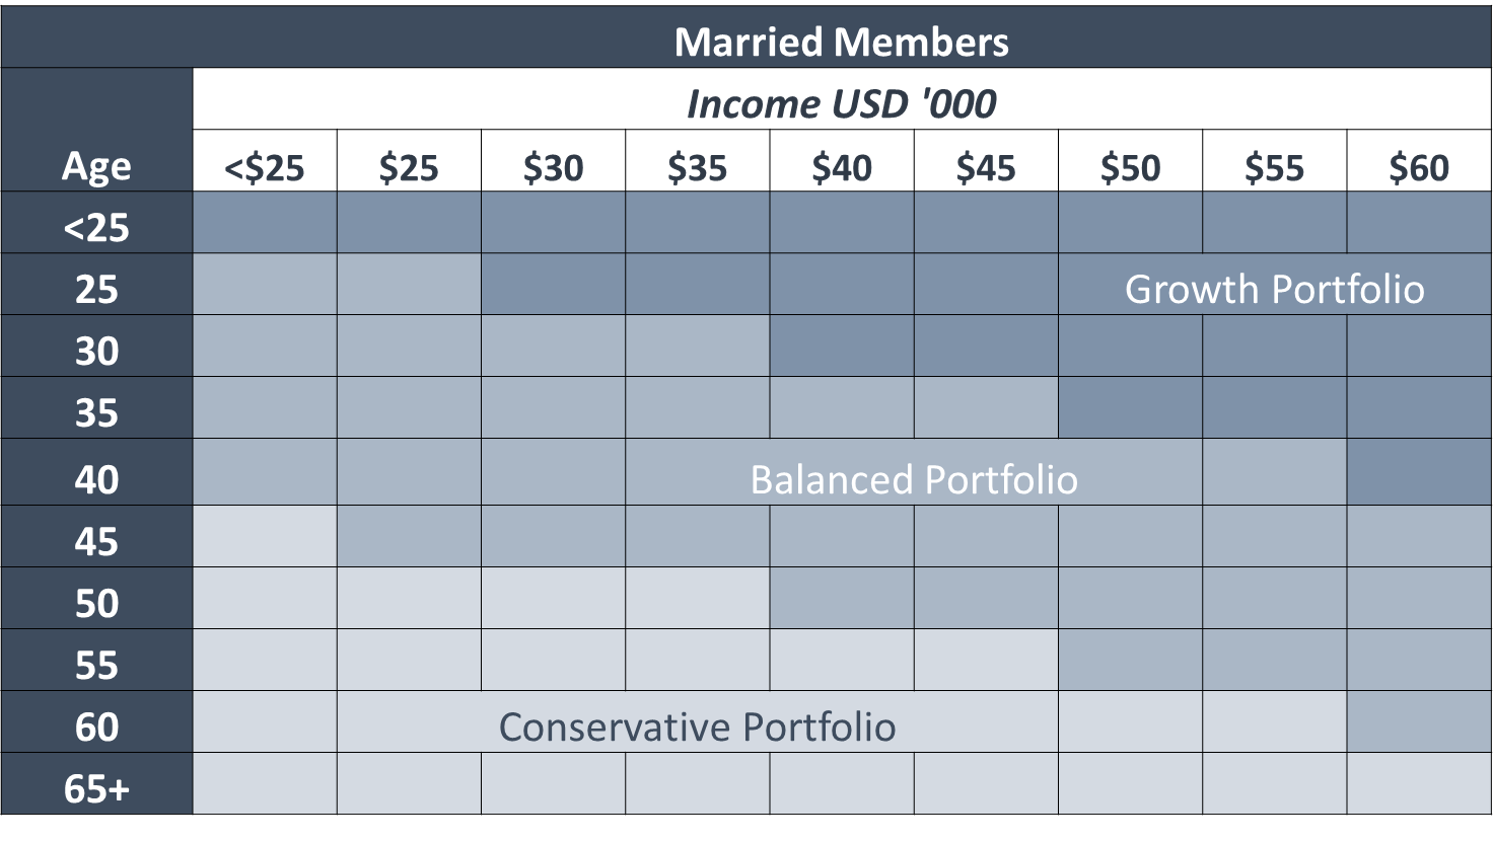 Married_Members_Lifecycle_Chart.png